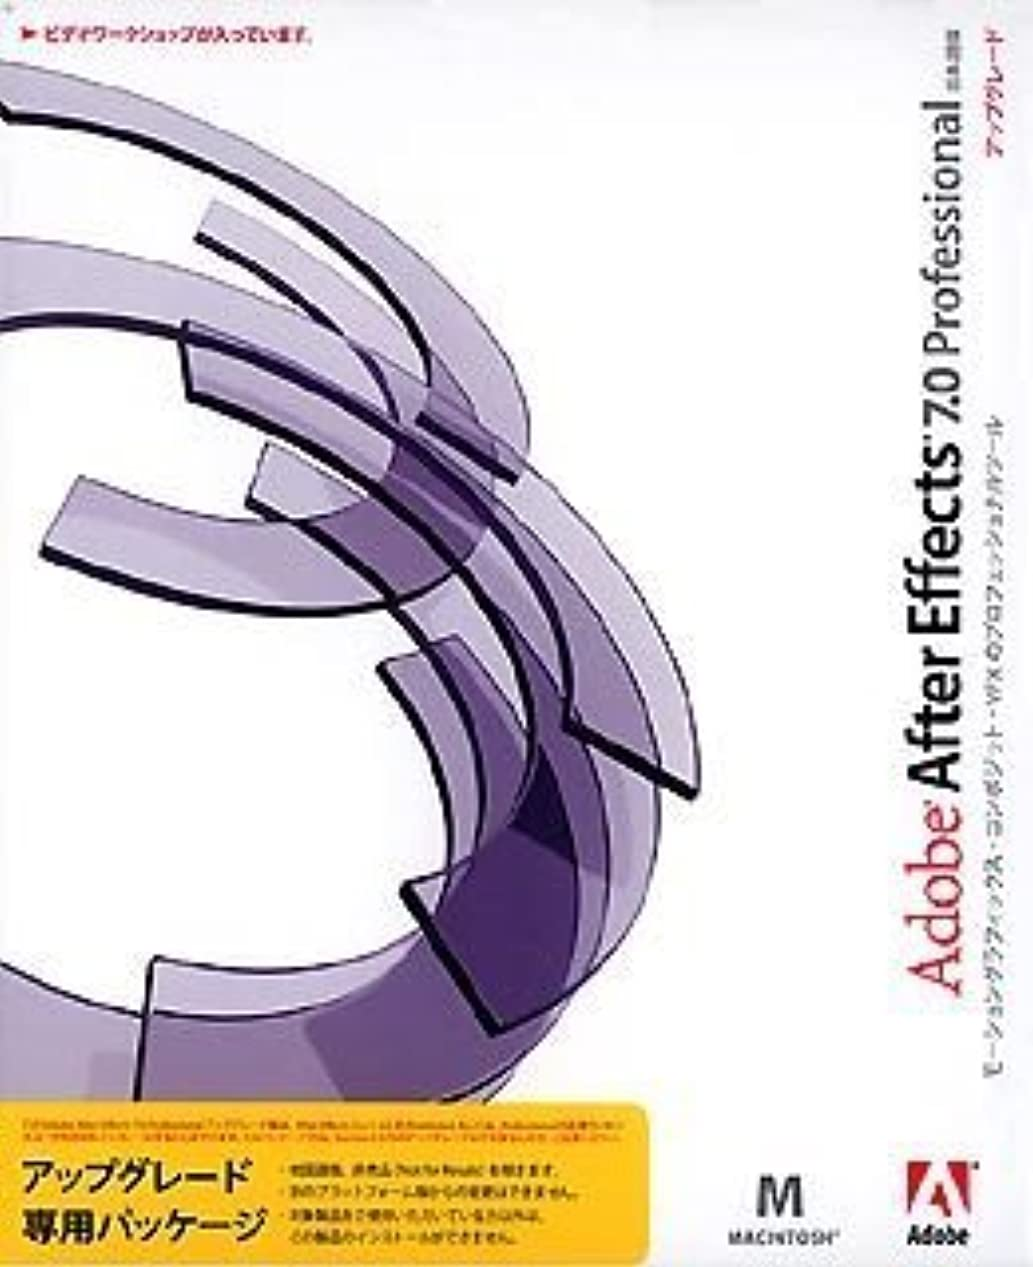 消す脱走寛解Adobe After Effects 7.0 Professional 日本語版 Macintosh版 アップグレード版 (Professional-Professional)